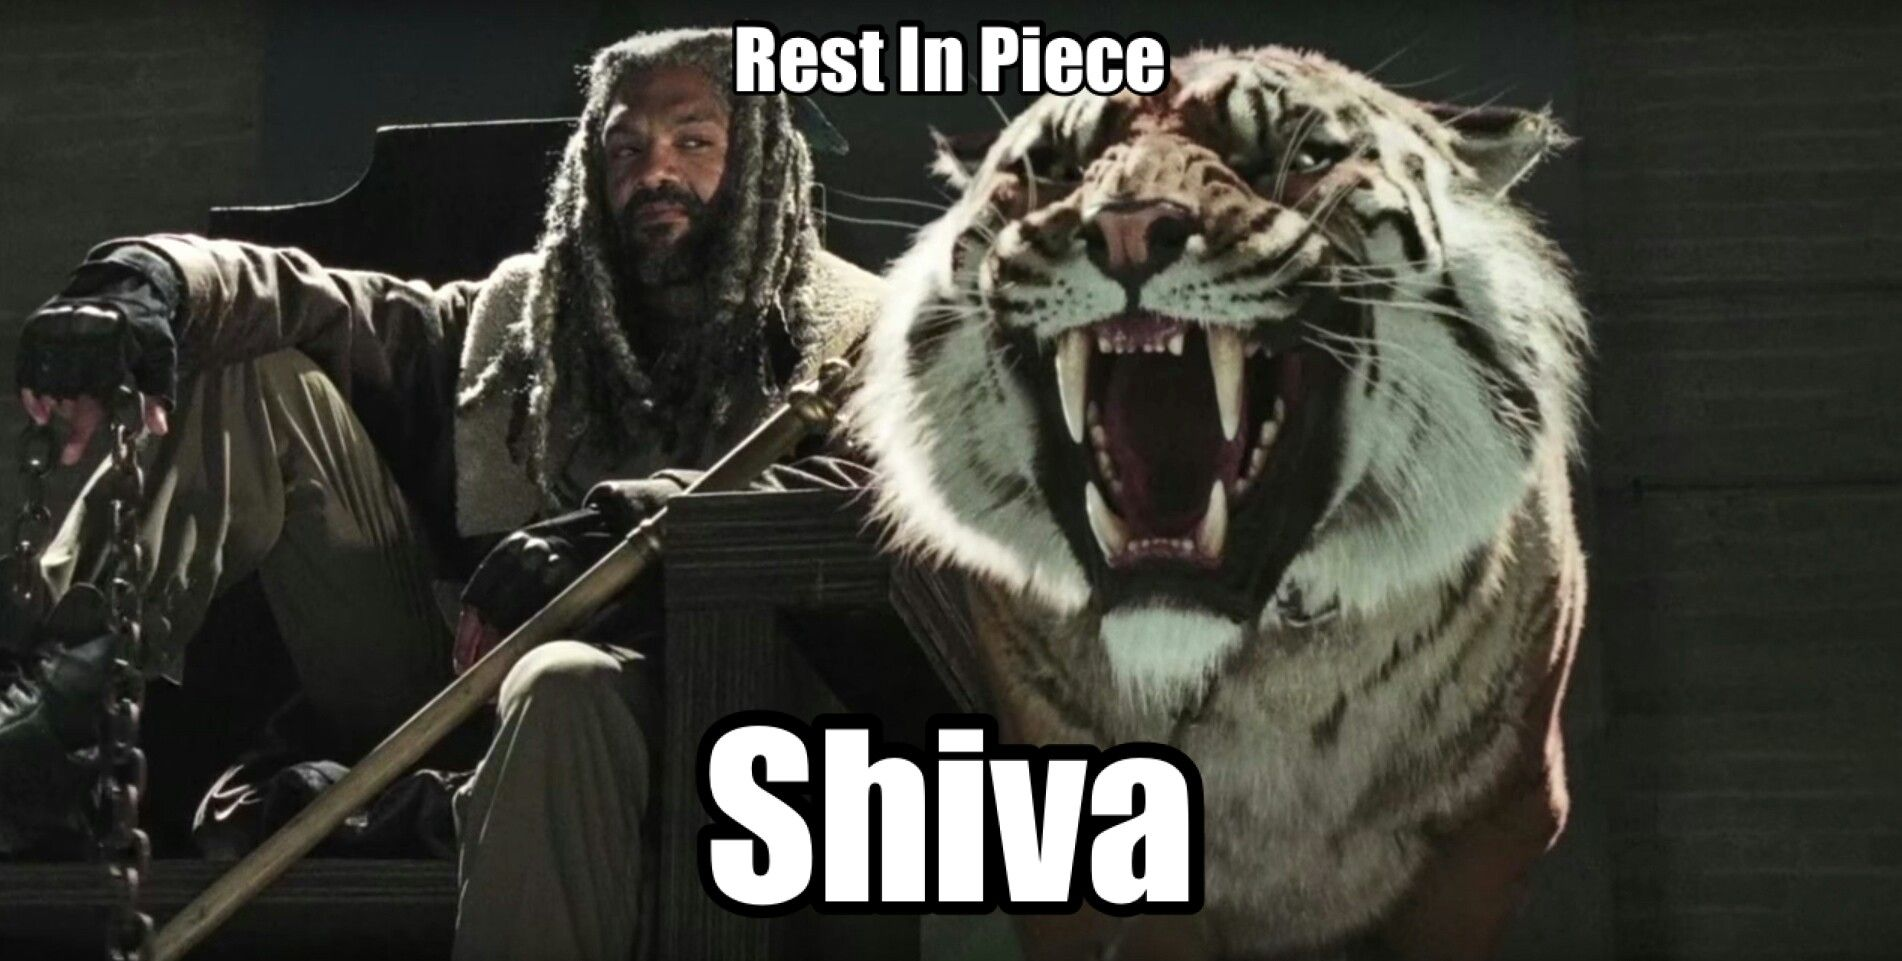 Pin By Sharon Walters On 1my Twd The Walking Dead Shiva